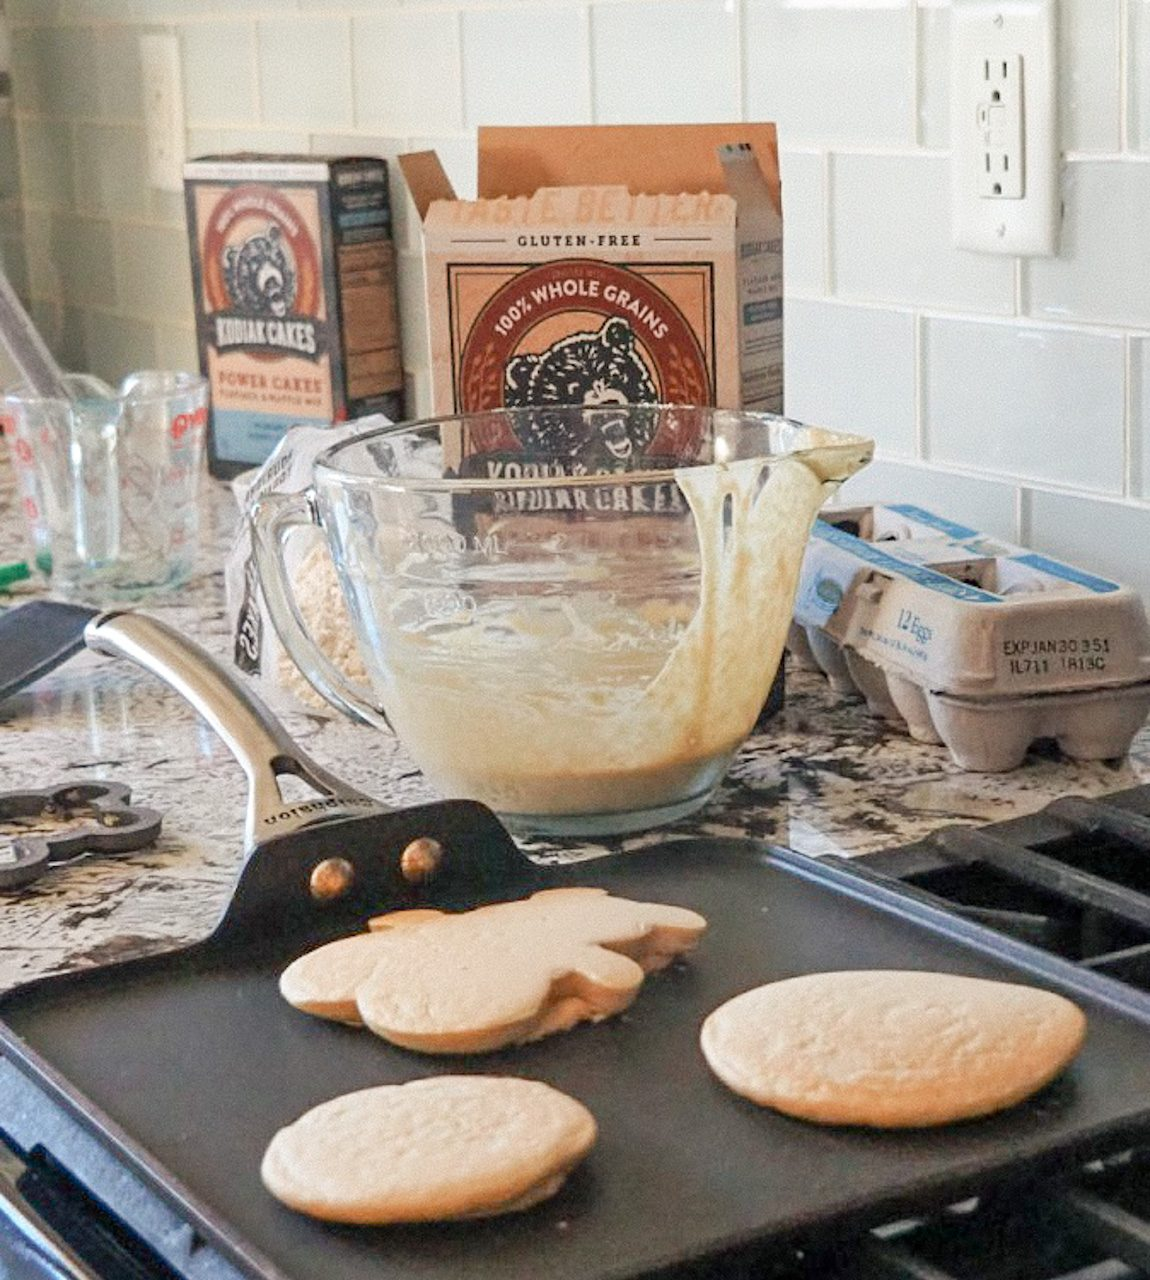 Conquering your Week Ahead with Kodiak Cakes Pancakes: How to Prepare for a Busy Week